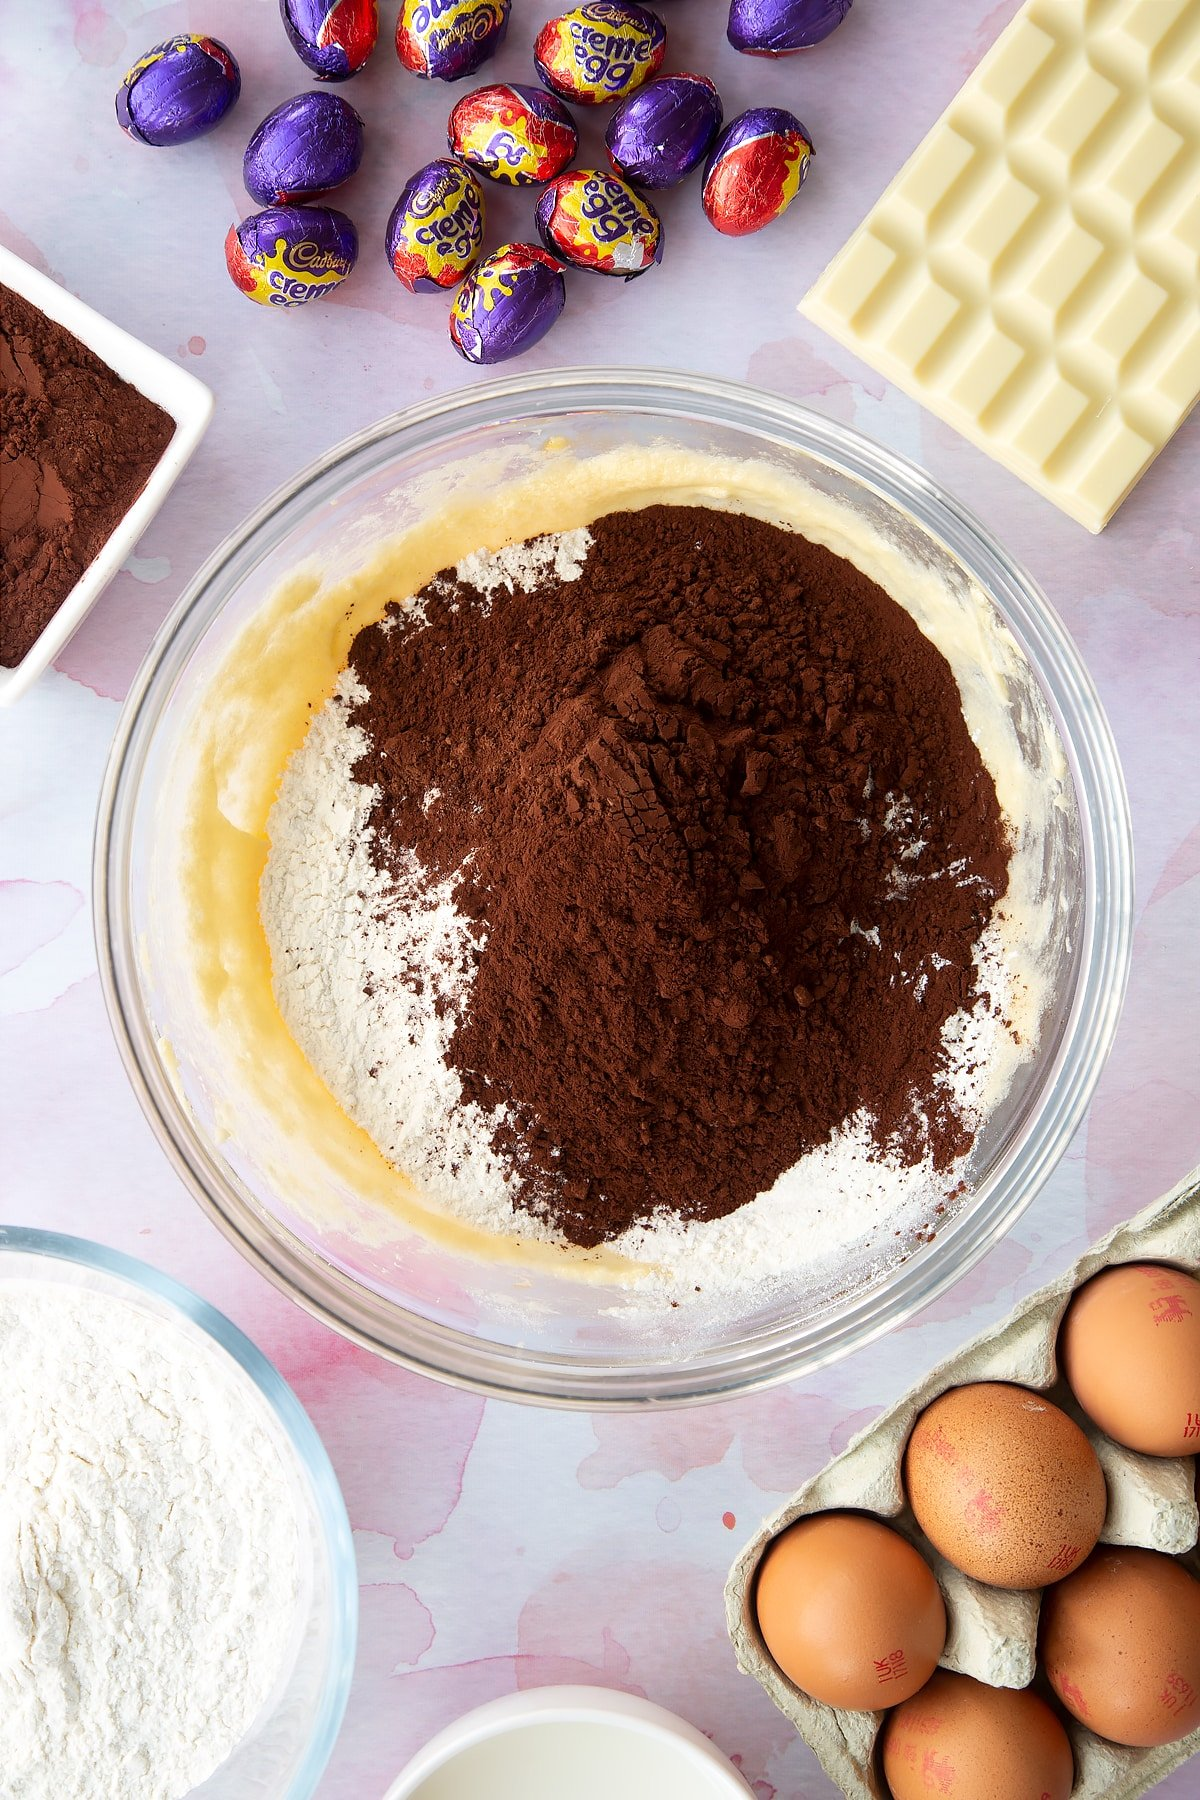 Butter, sugar and eggs beaten together with cocoa, self-raising flour and baking powder on top. Ingredients to make Cadbury Creme Egg cakes surround the bowl.